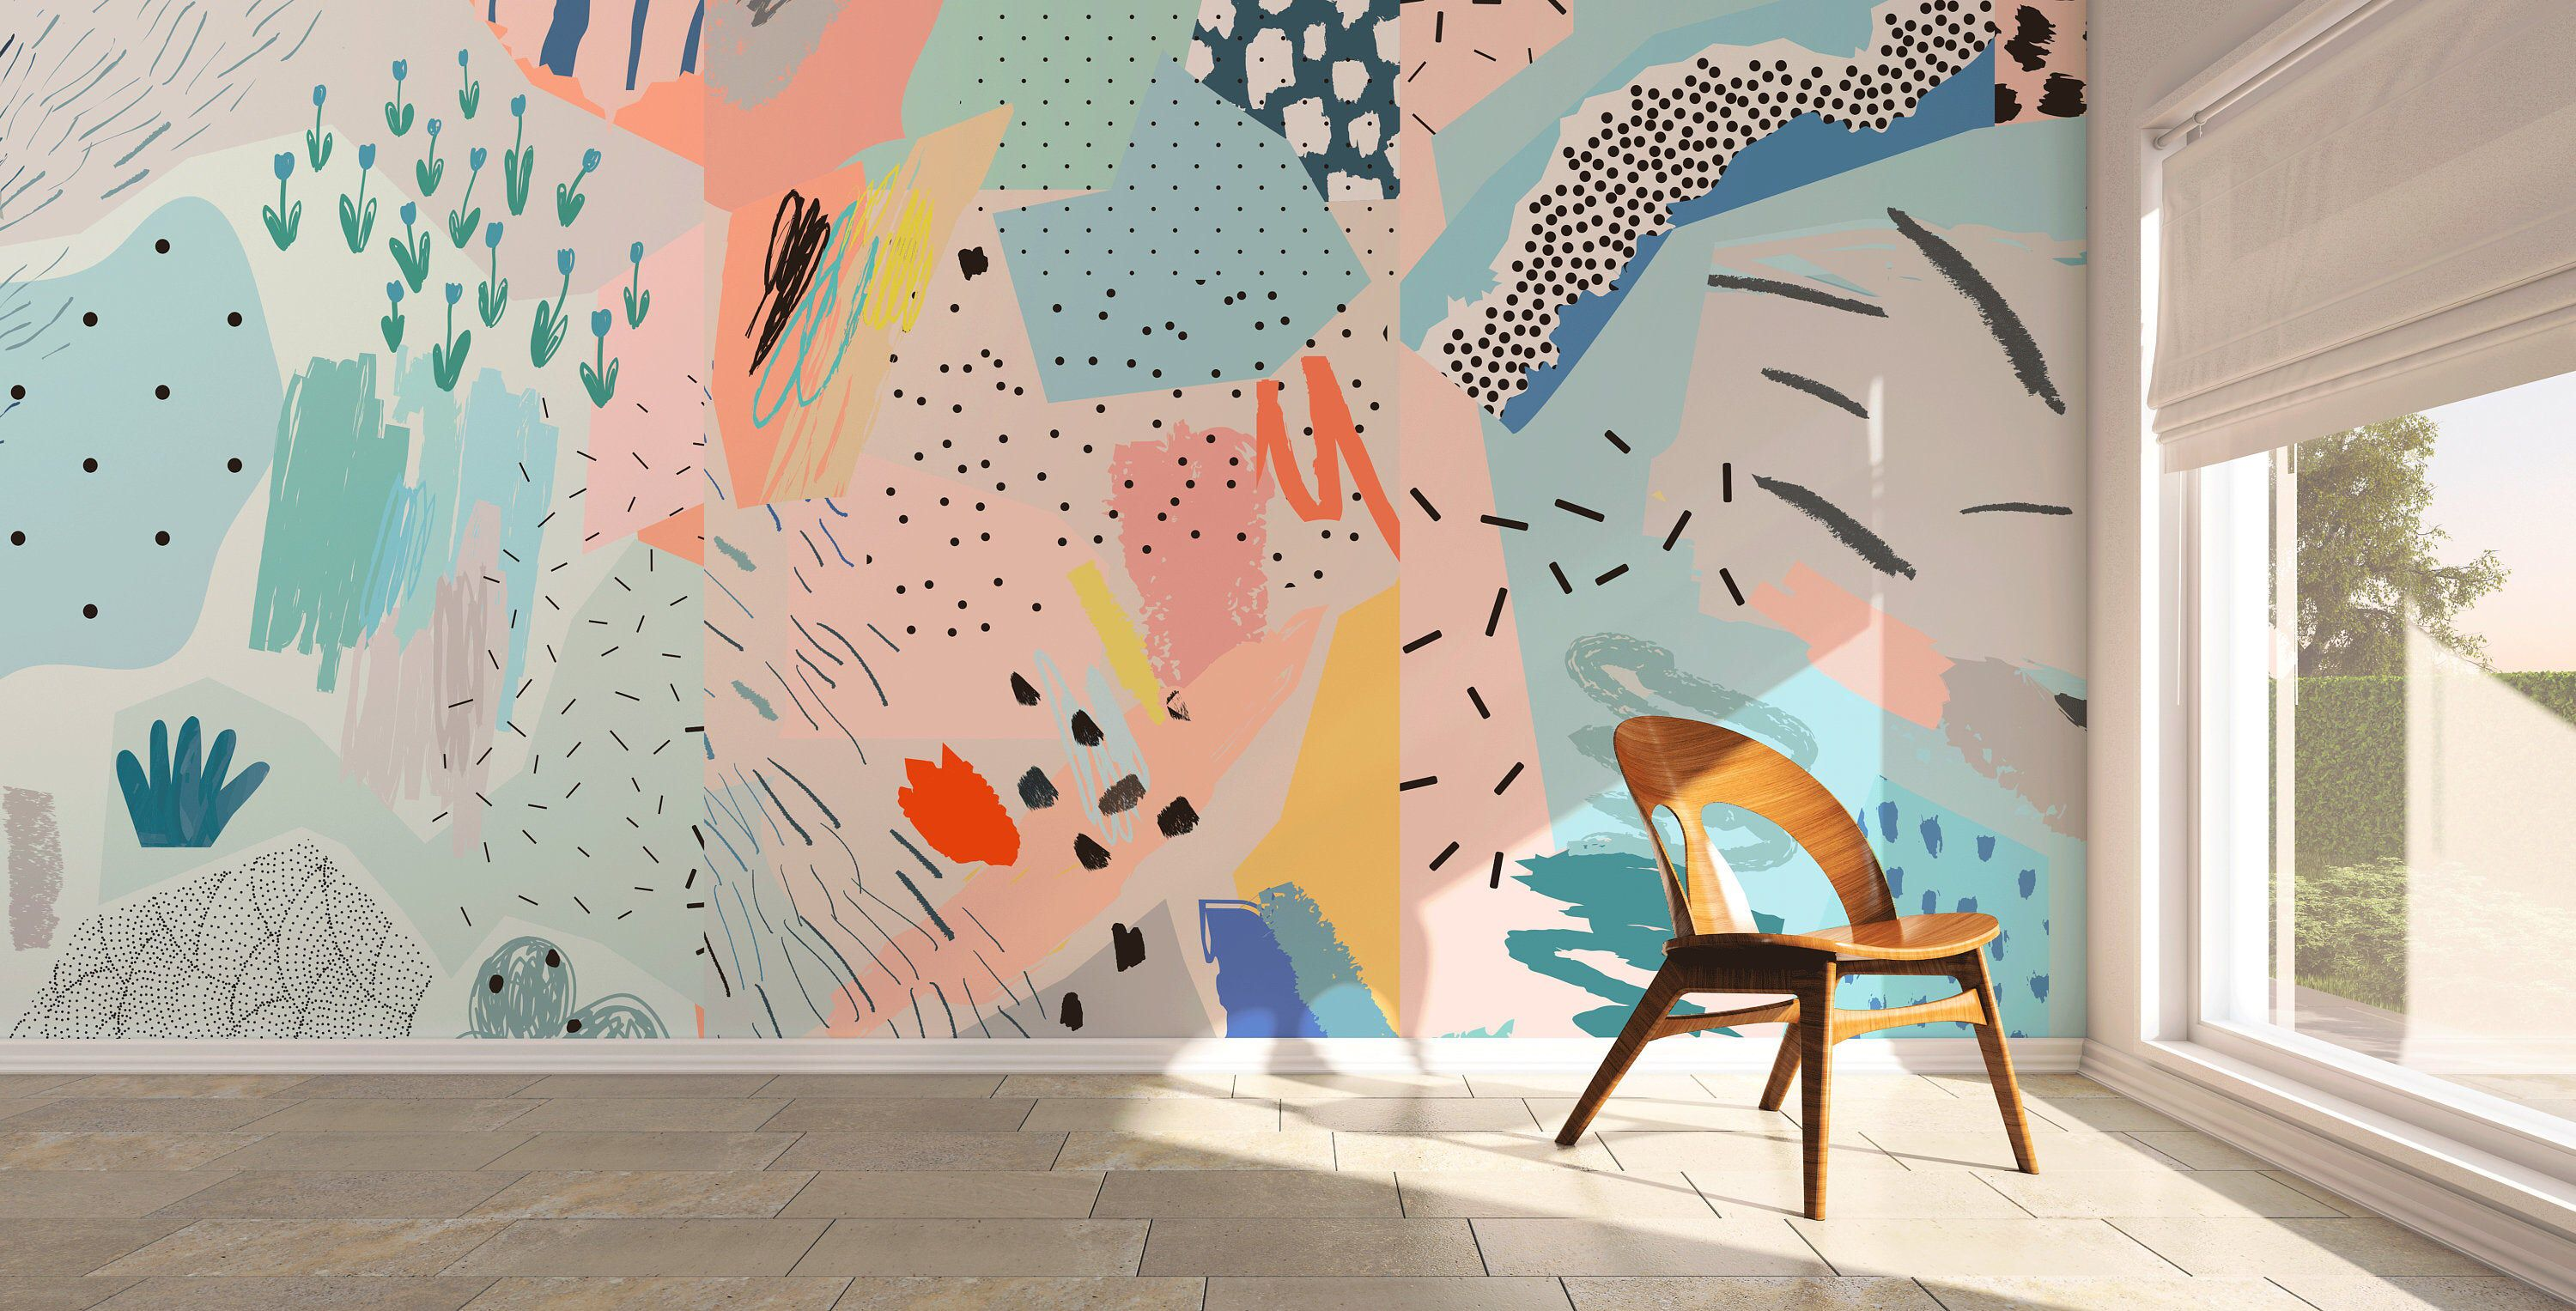 Removable Wallpaper Peel And Stick Wallpaper Wall Paper Wall Mural Abstract Pop Wallpaper A521 In 2020 Removable Wallpaper Wall Wallpaper Mural